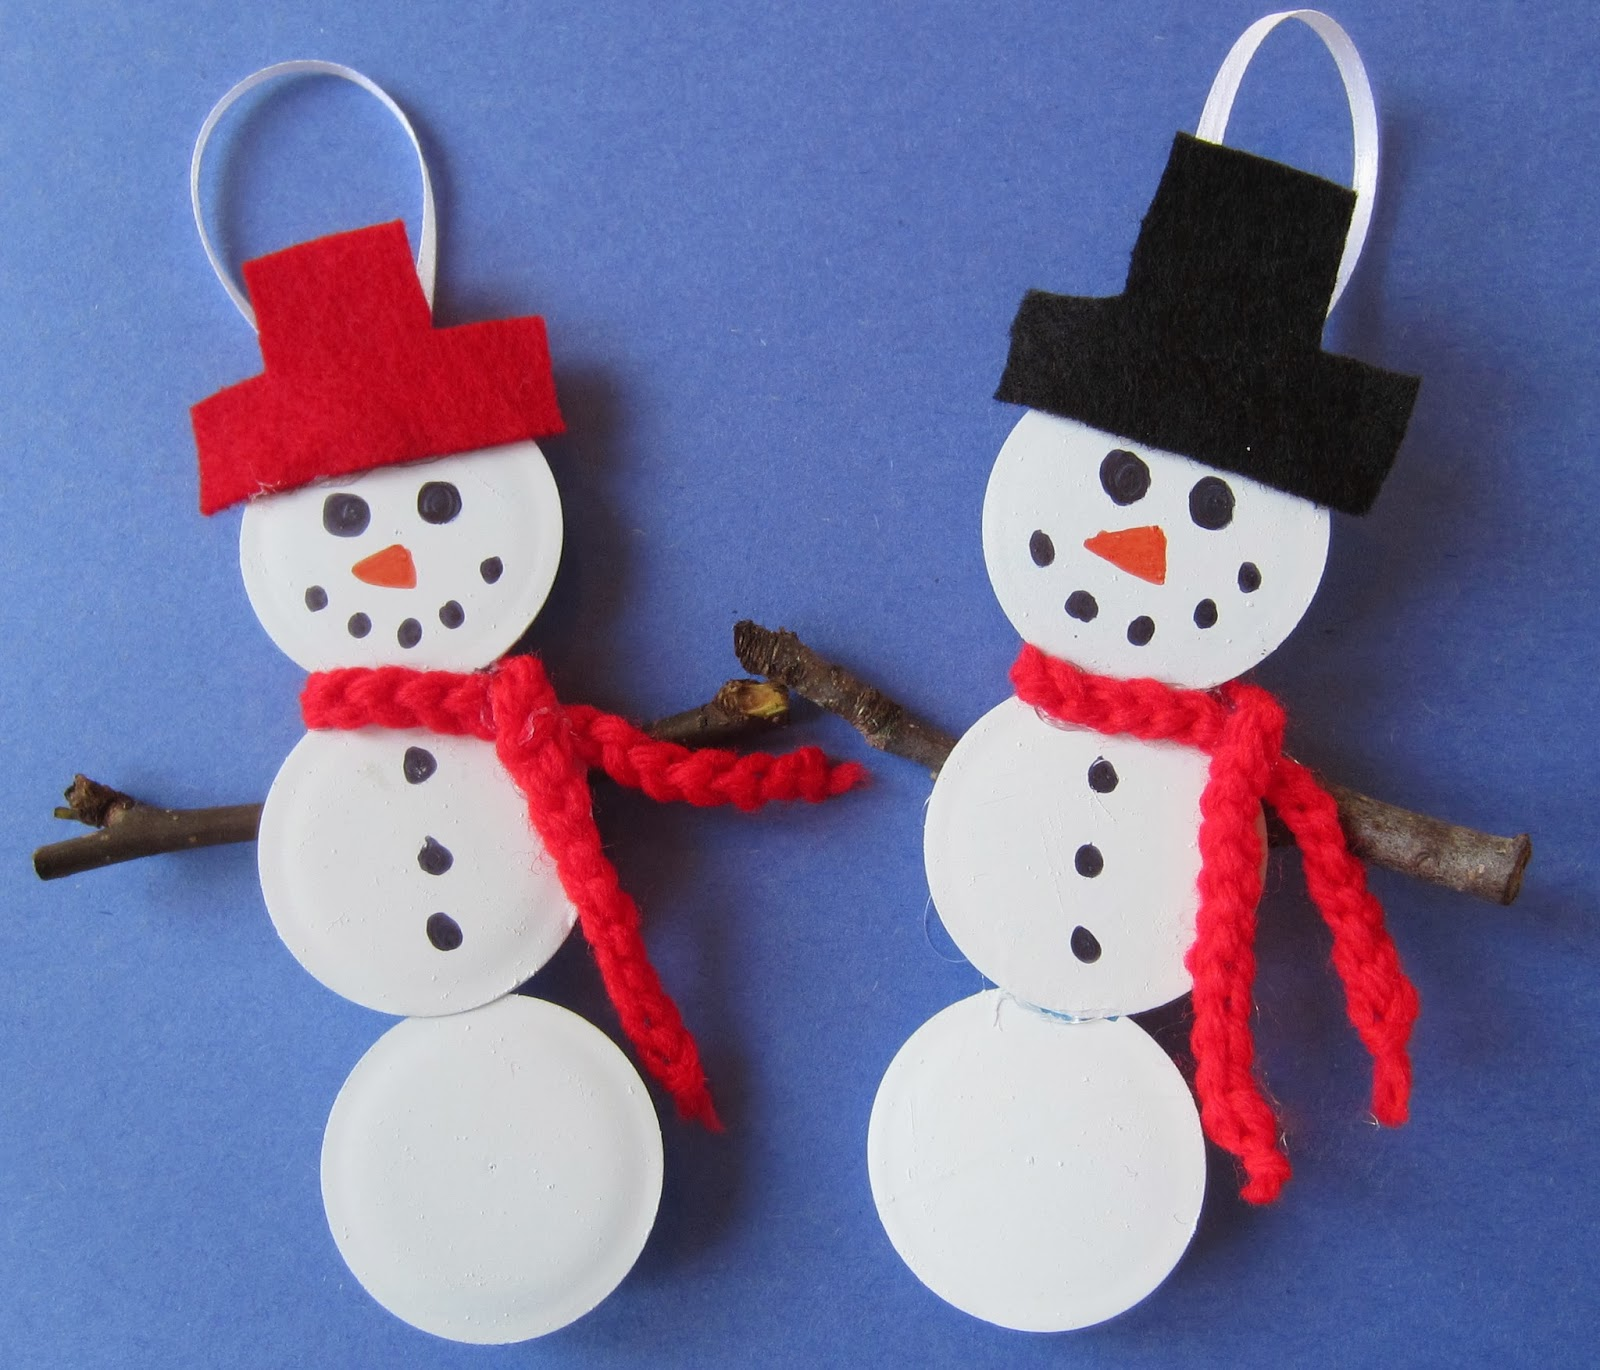 Easymeworld diy snowman christmas ornaments for Plastic snowman